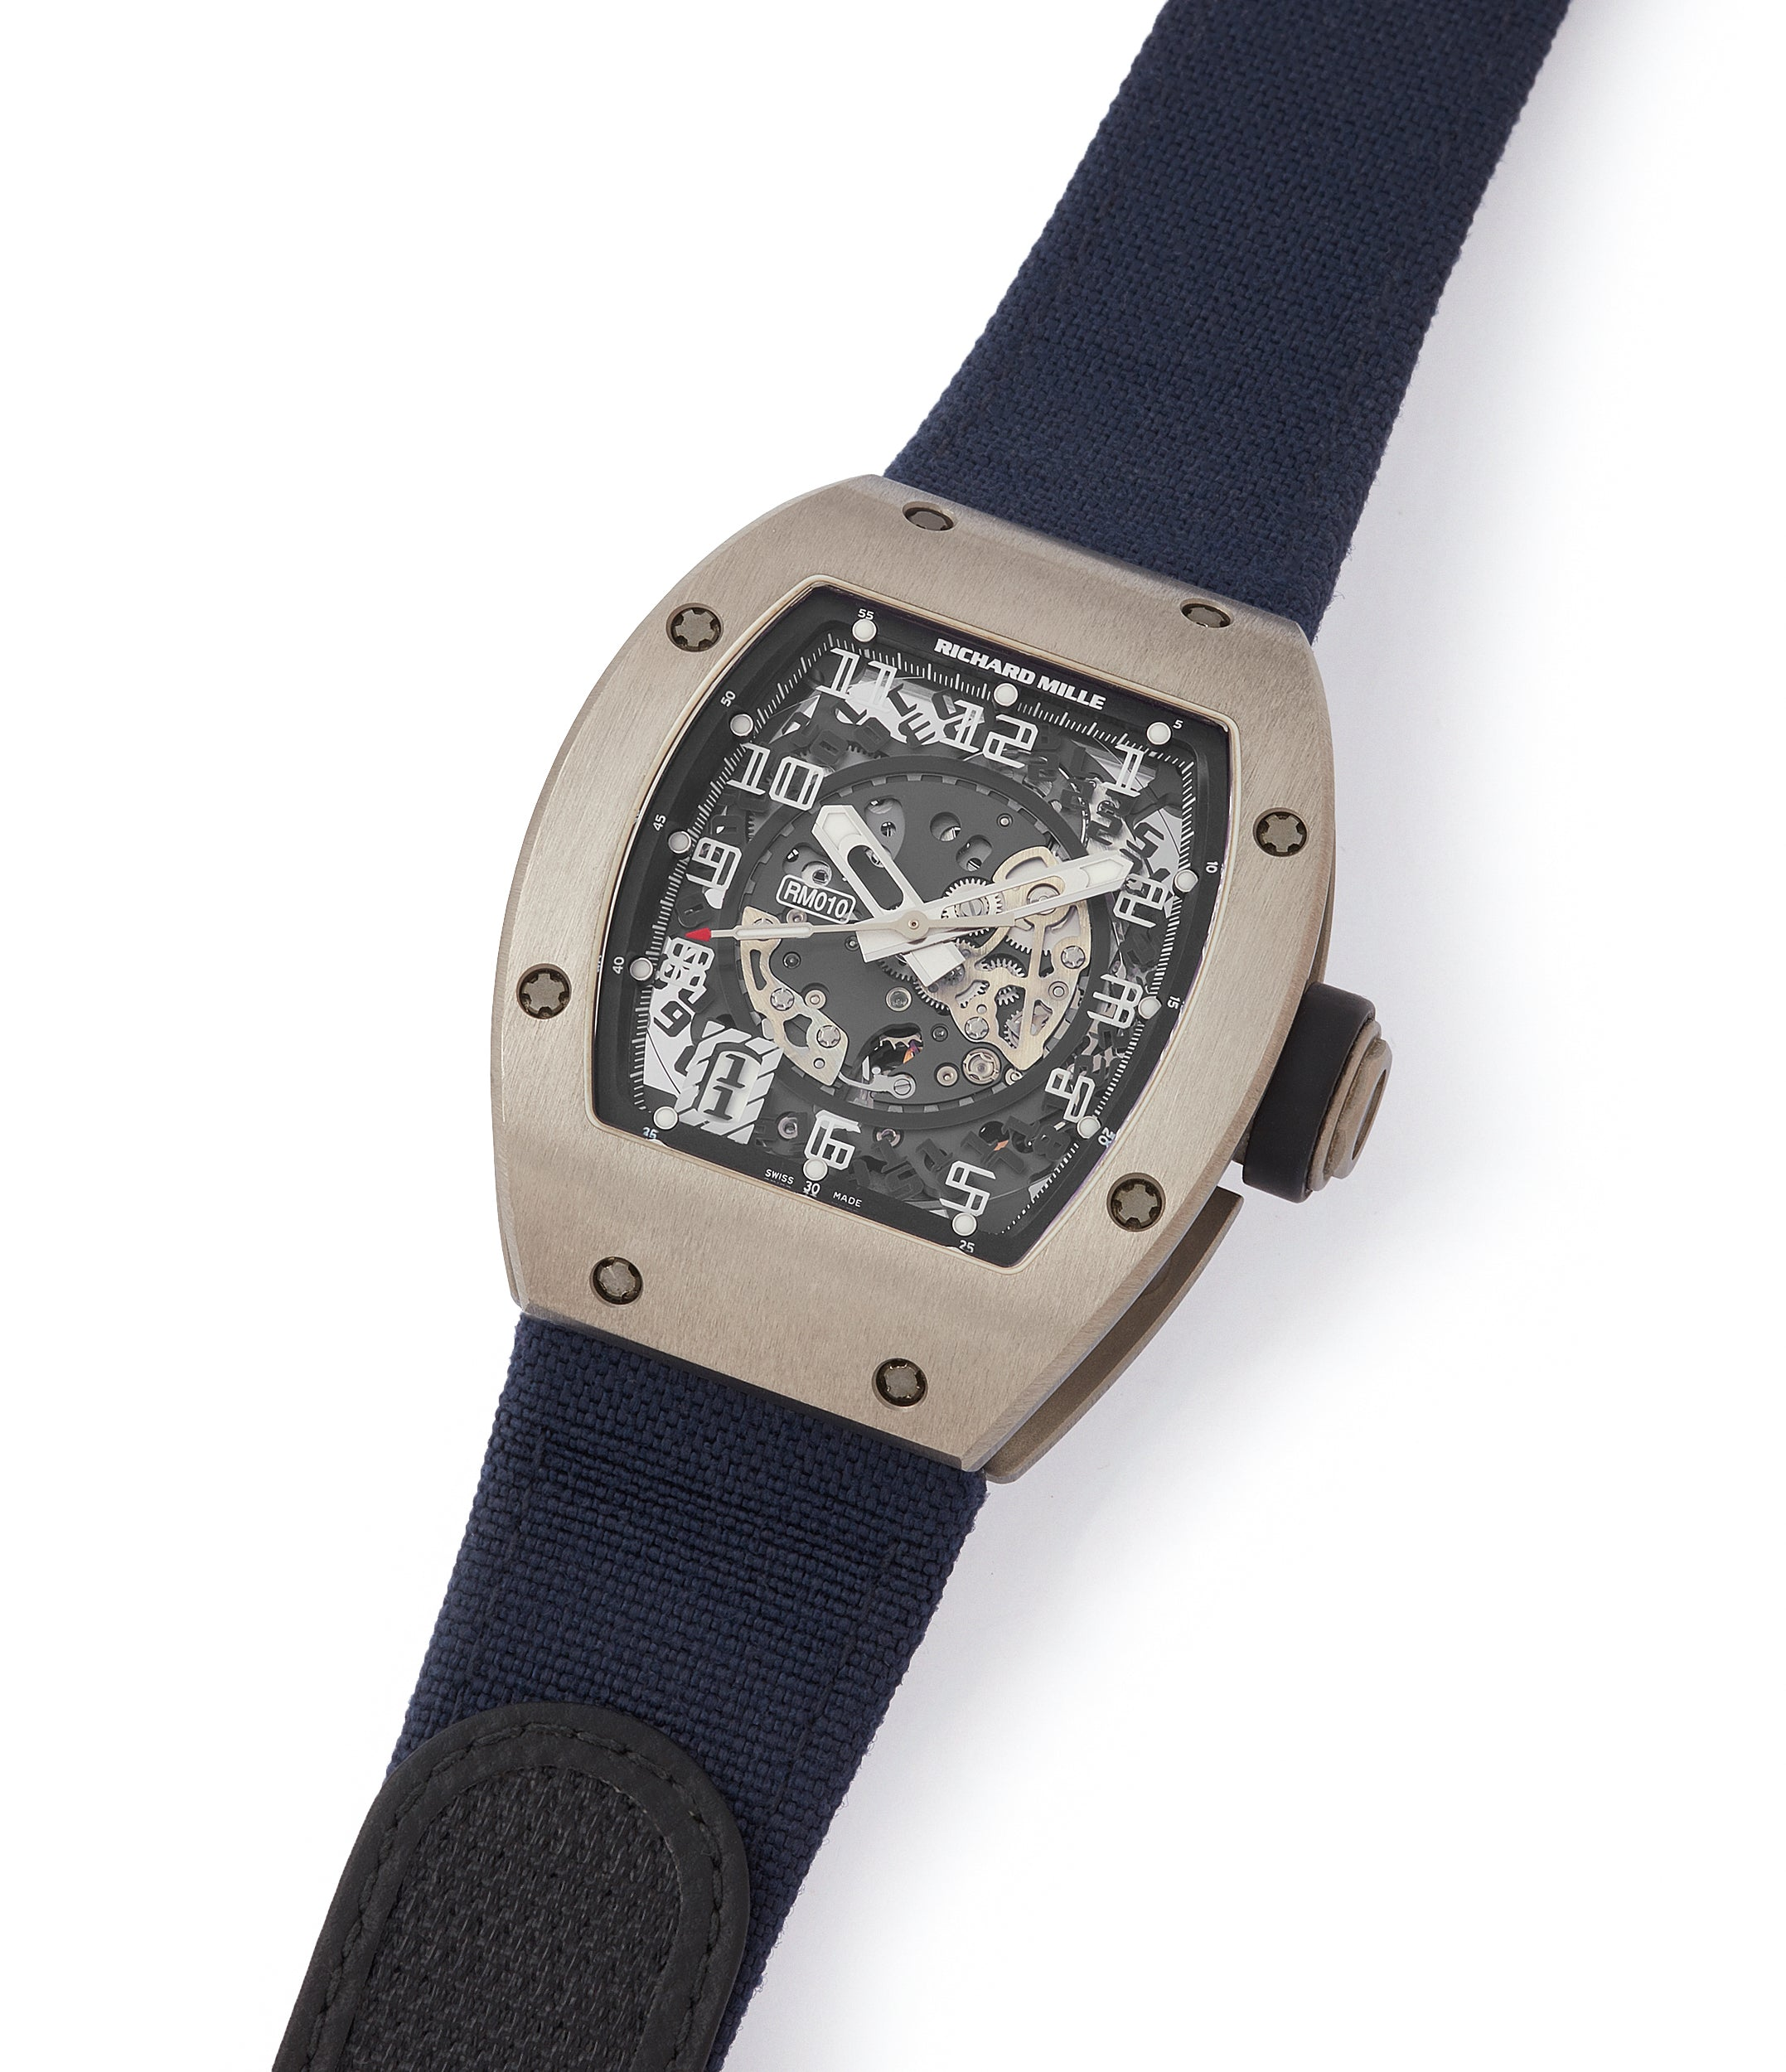 for sale Richard Mille RM010 titanium rare luxury sport watch by independent watchmaker for sale online at A Collected Man London UK specialist of rare watches